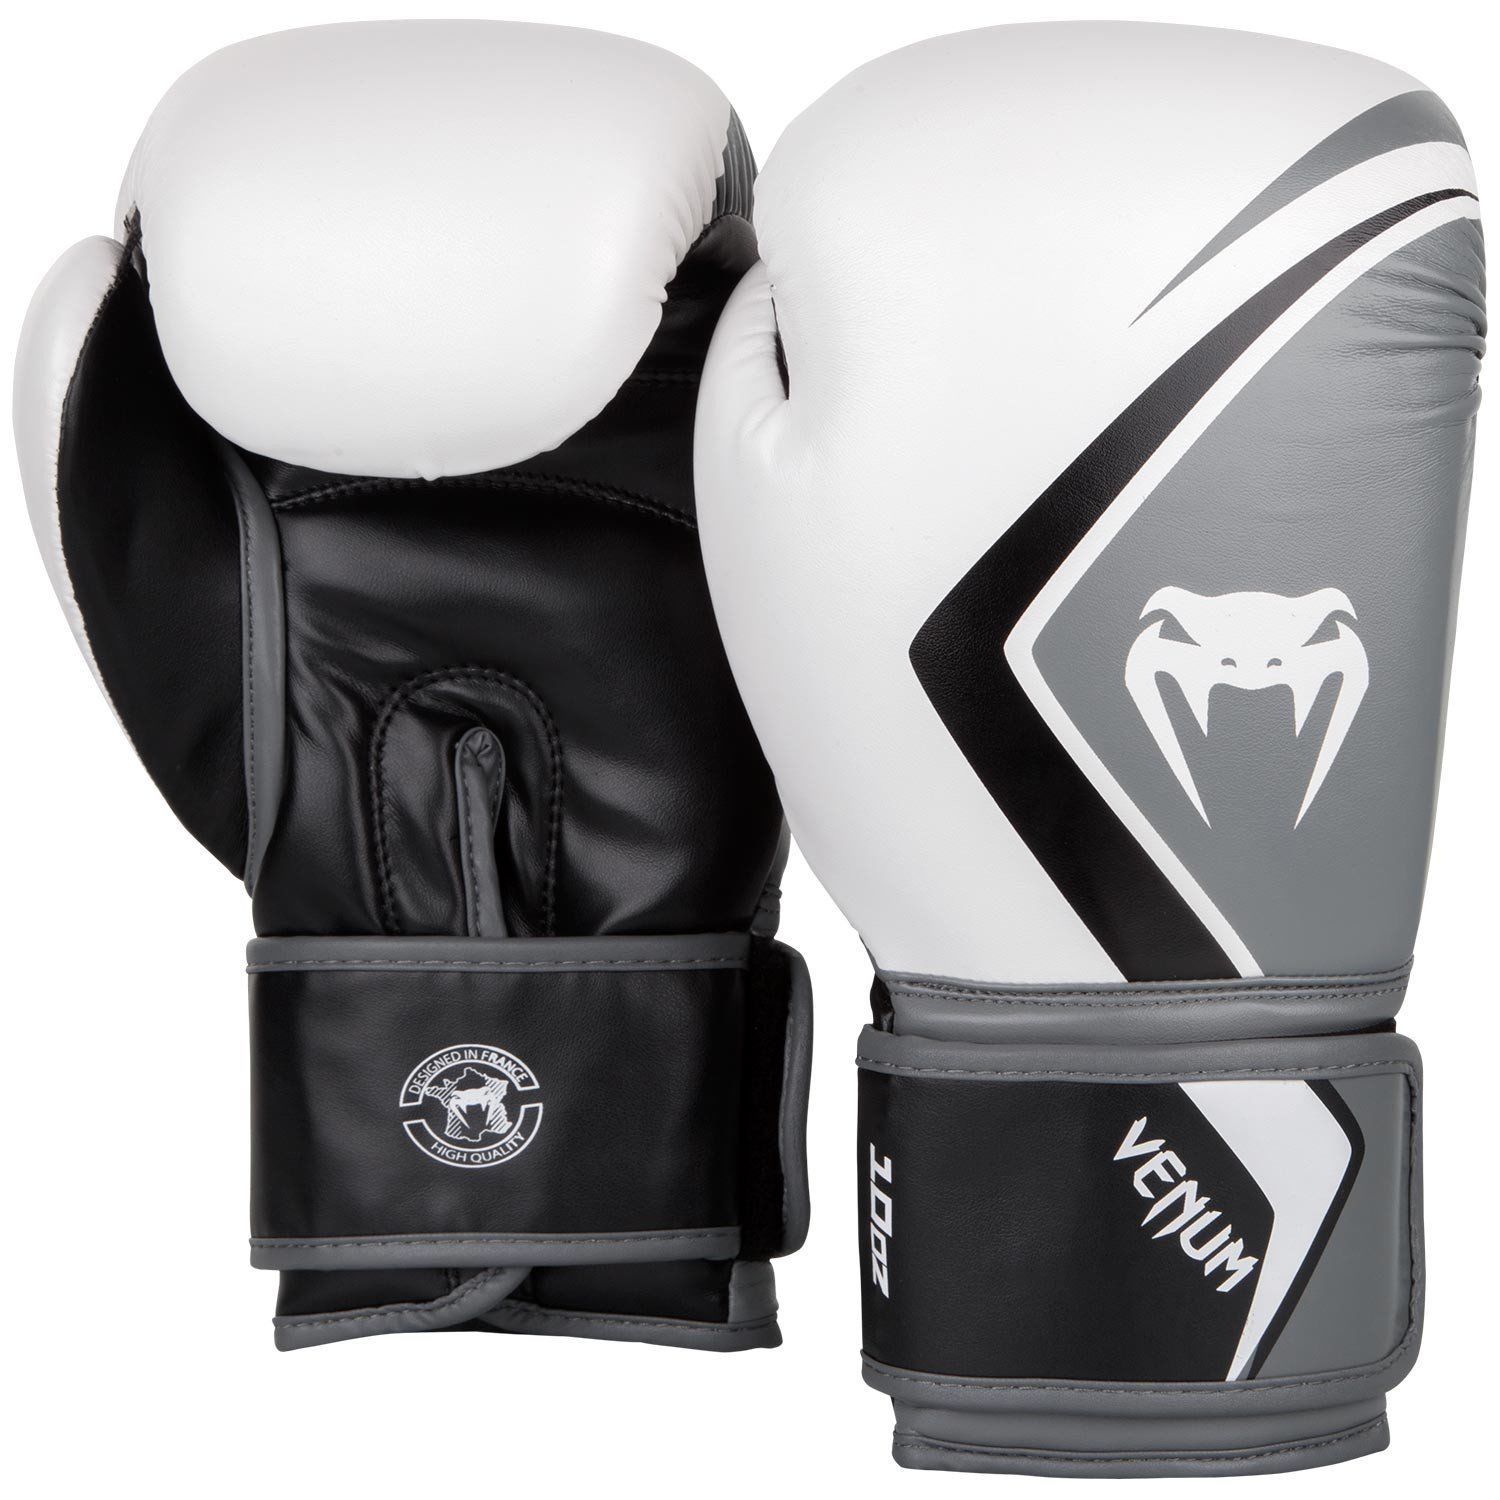 Shop home products venum boxing gloves contender 2 0 white grey black